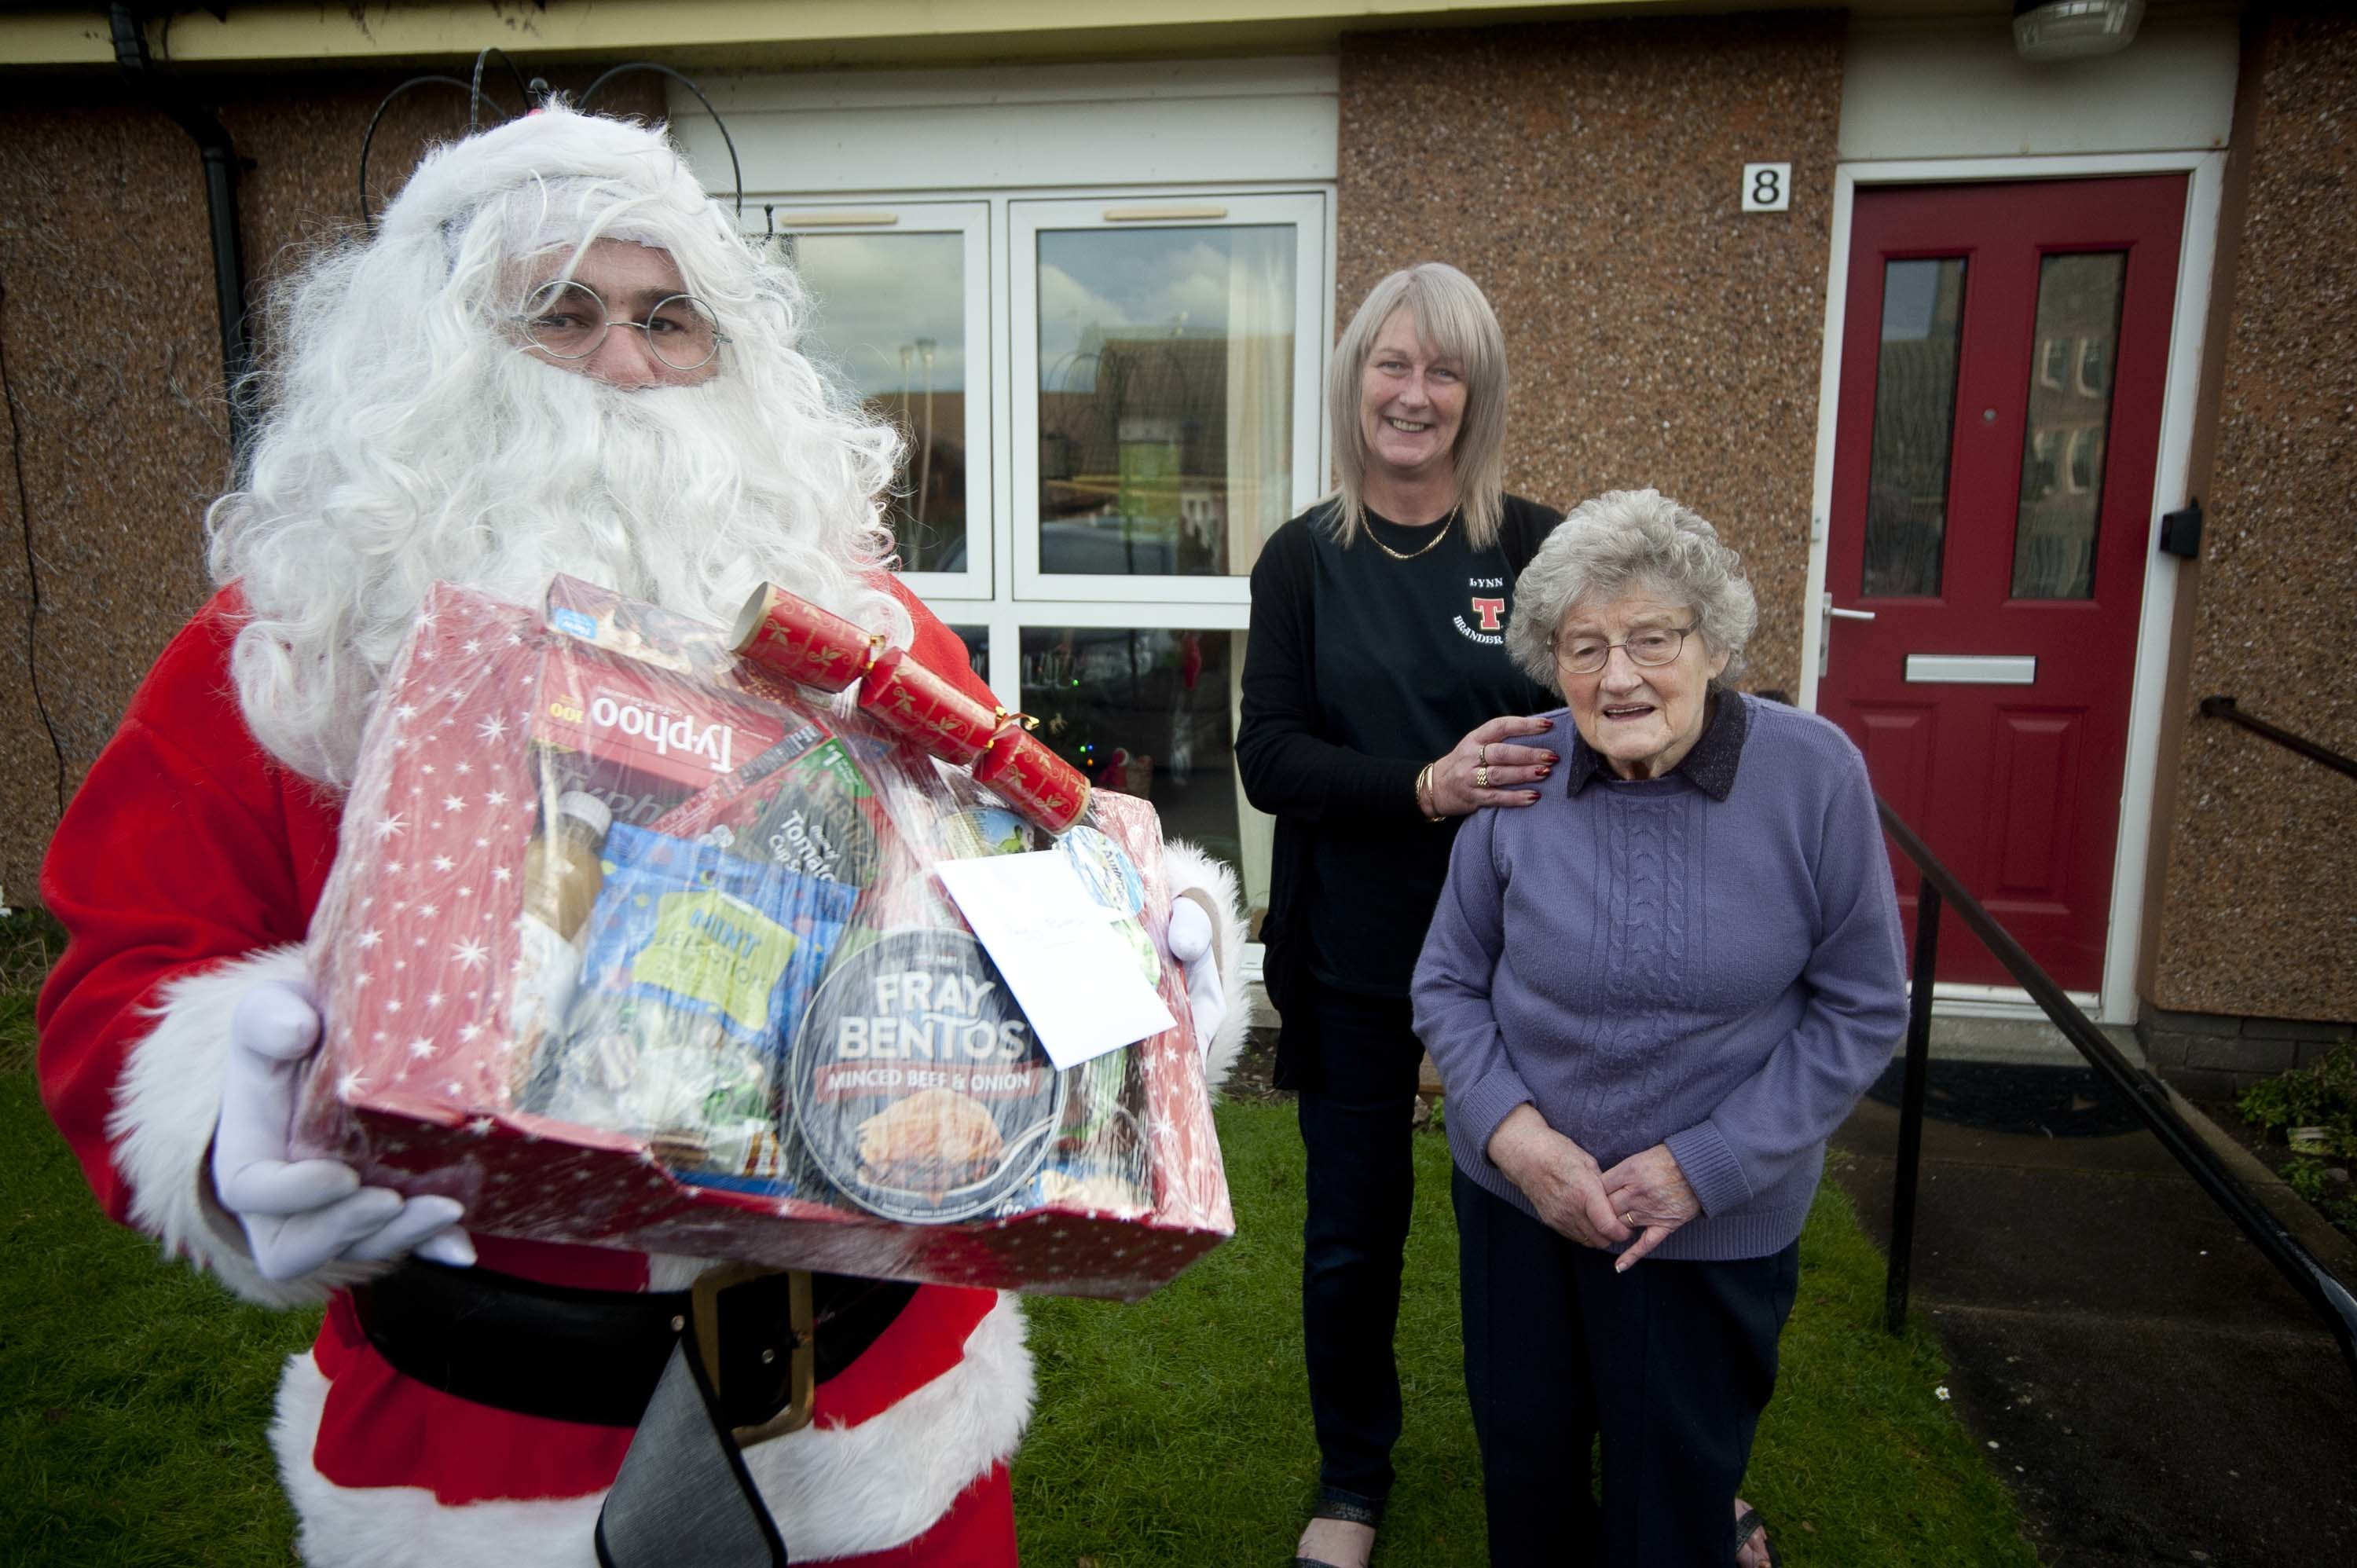 The Brander Arms in Lossiemouth has delivered more than 80 food parcels to pensioners in the town. Pictured, from left: Ryan Edwards, landlady Lynn Mitchell, Helen Edwards.